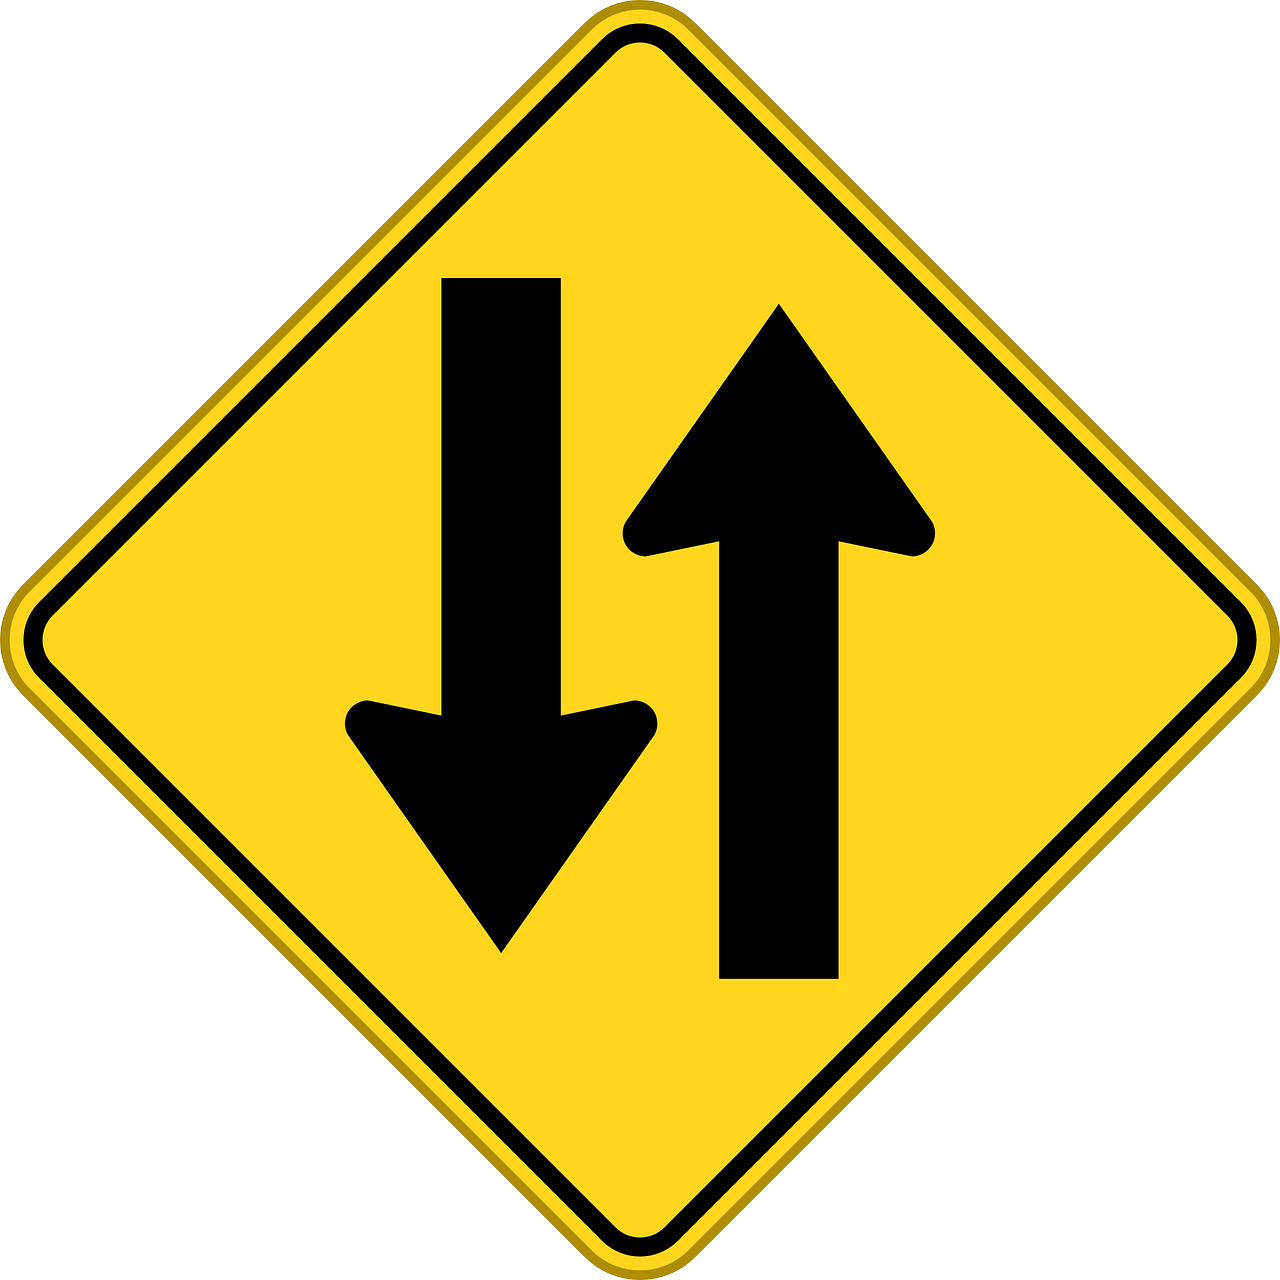 two-way-traffic-148887_1280.png